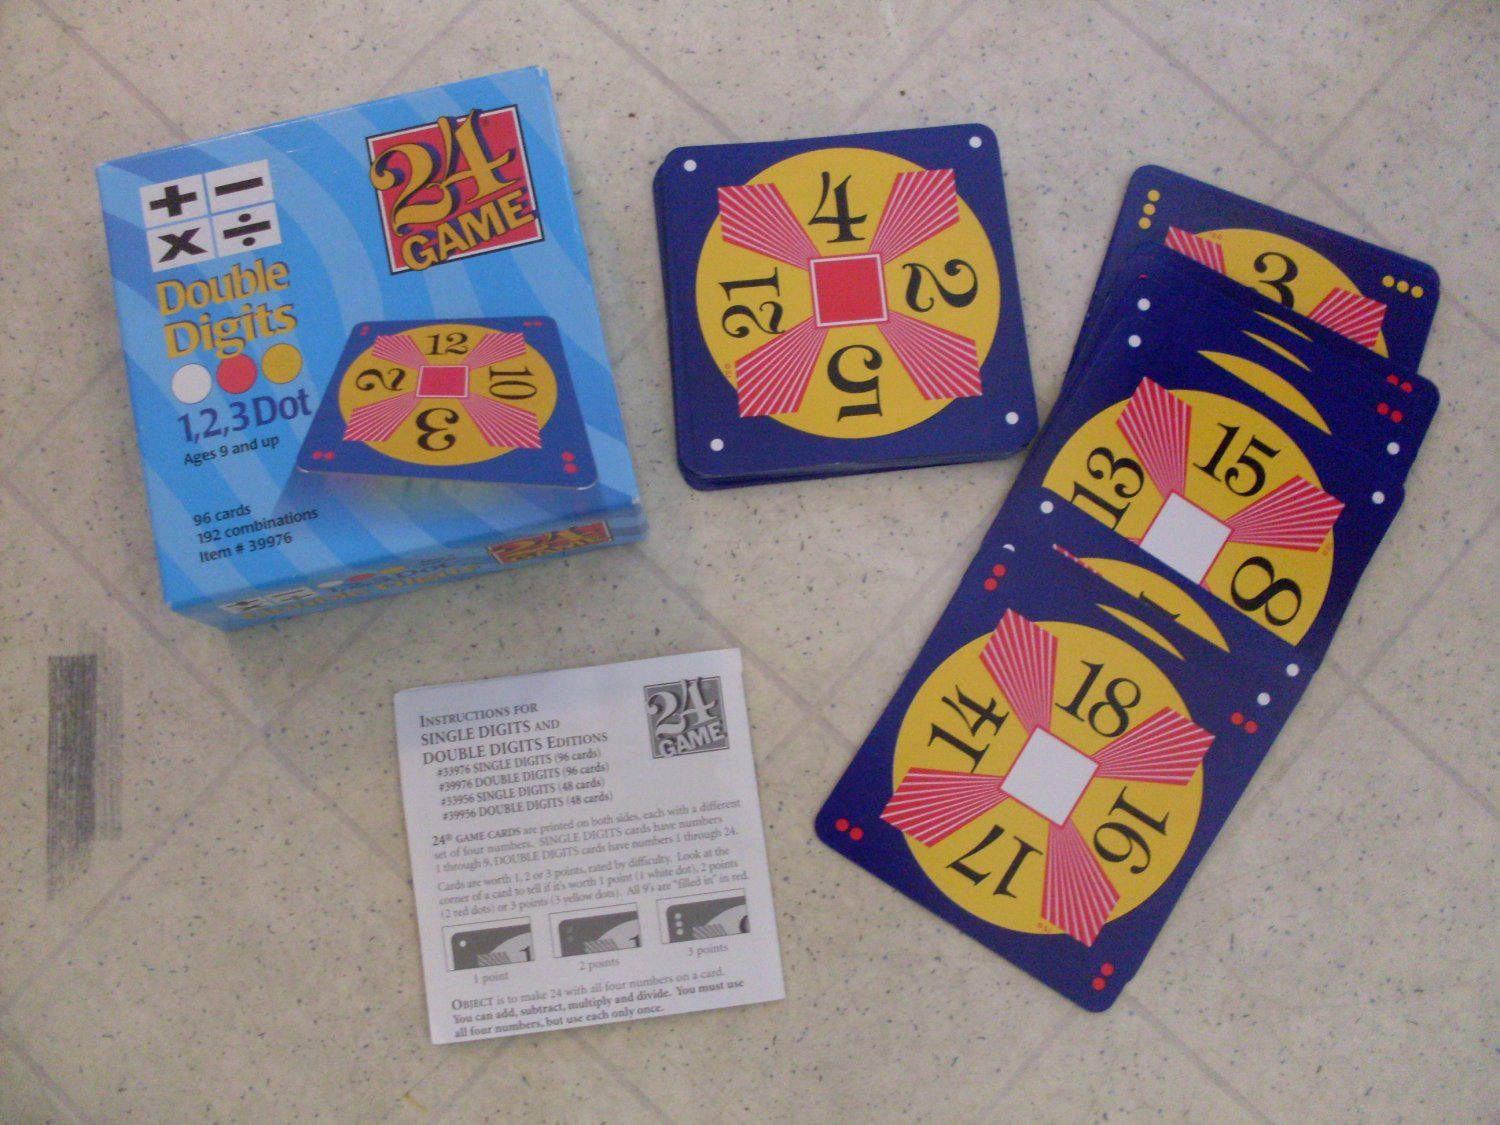 24 Game Double Digits 1 2 3 Dot Math Card Game